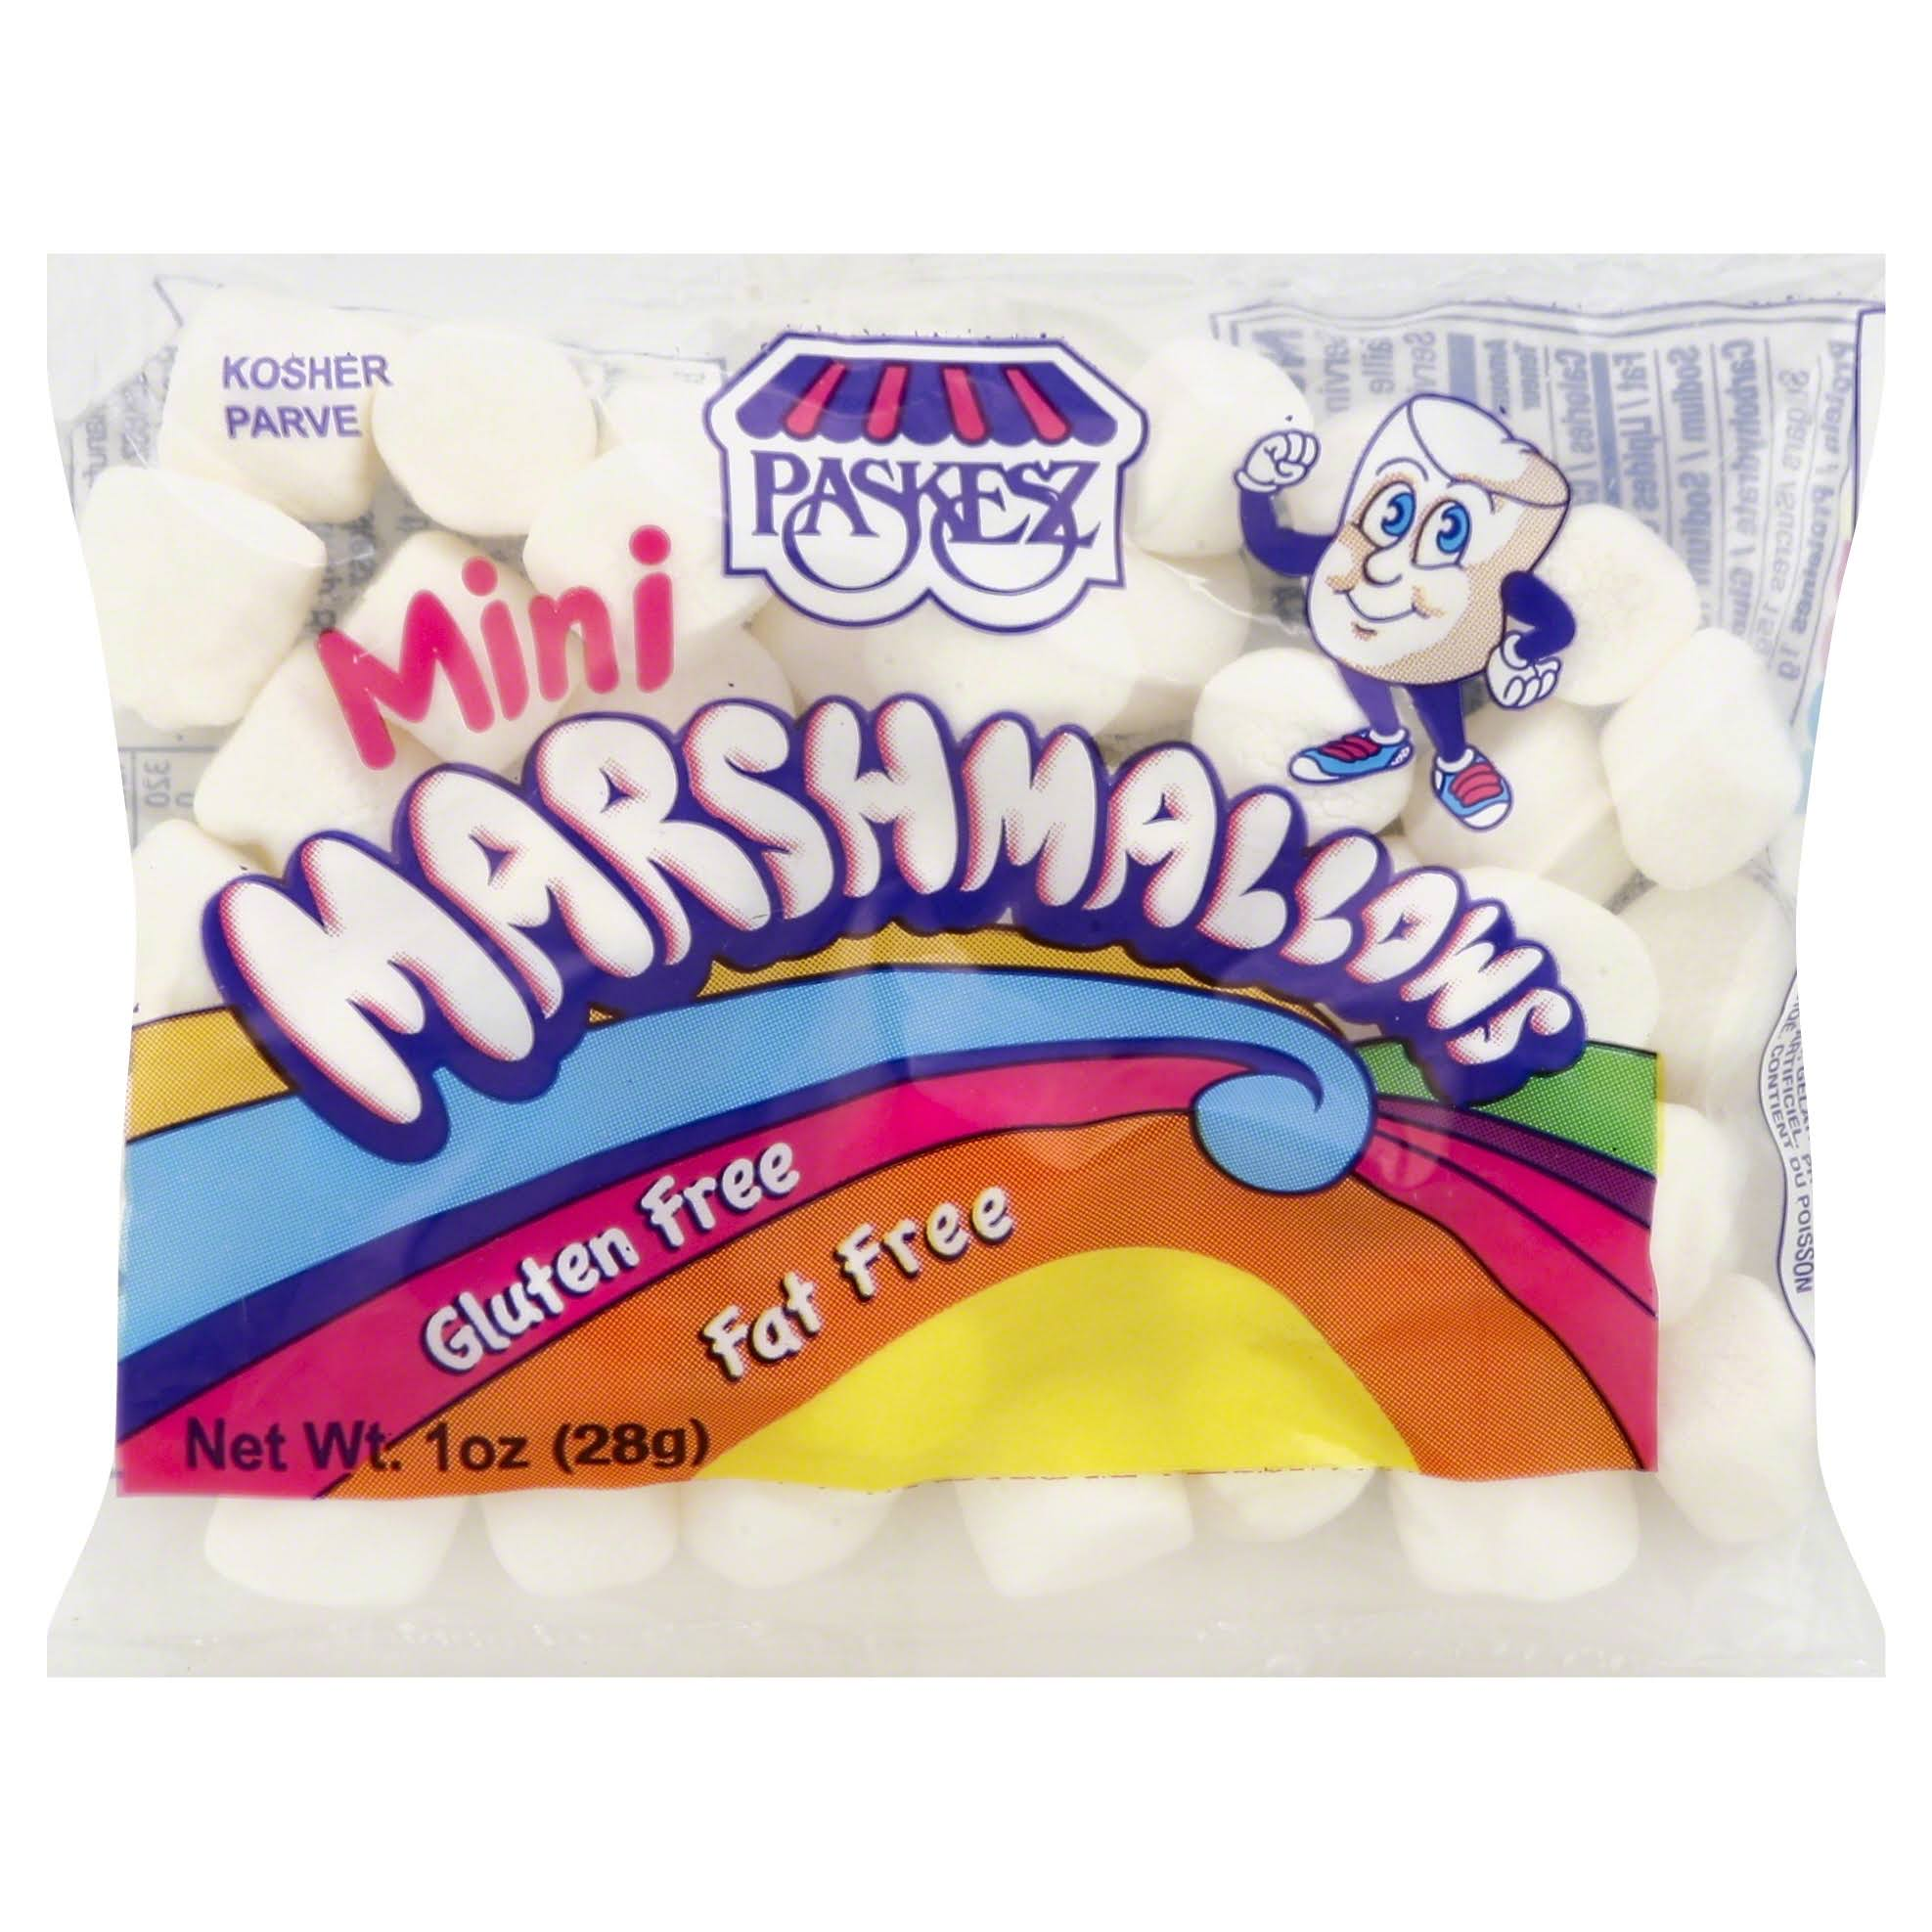 Paskesz Mini Marshmallows - 1oz